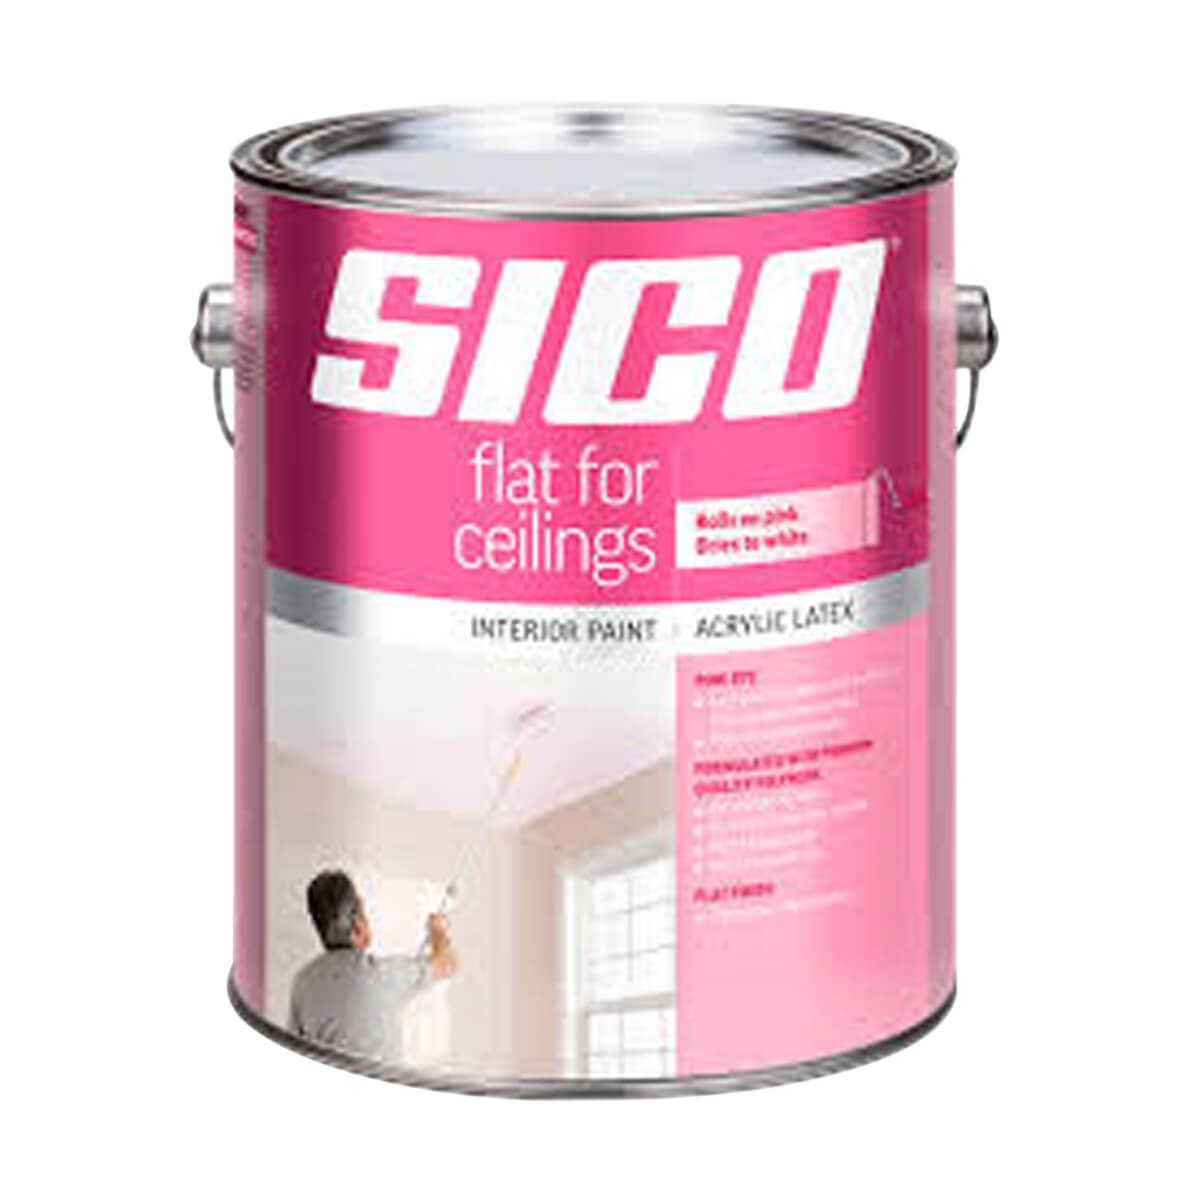 Flat for Ceilings Finish w/ Pink Dye Interior Latex Paint - 3.78L - White